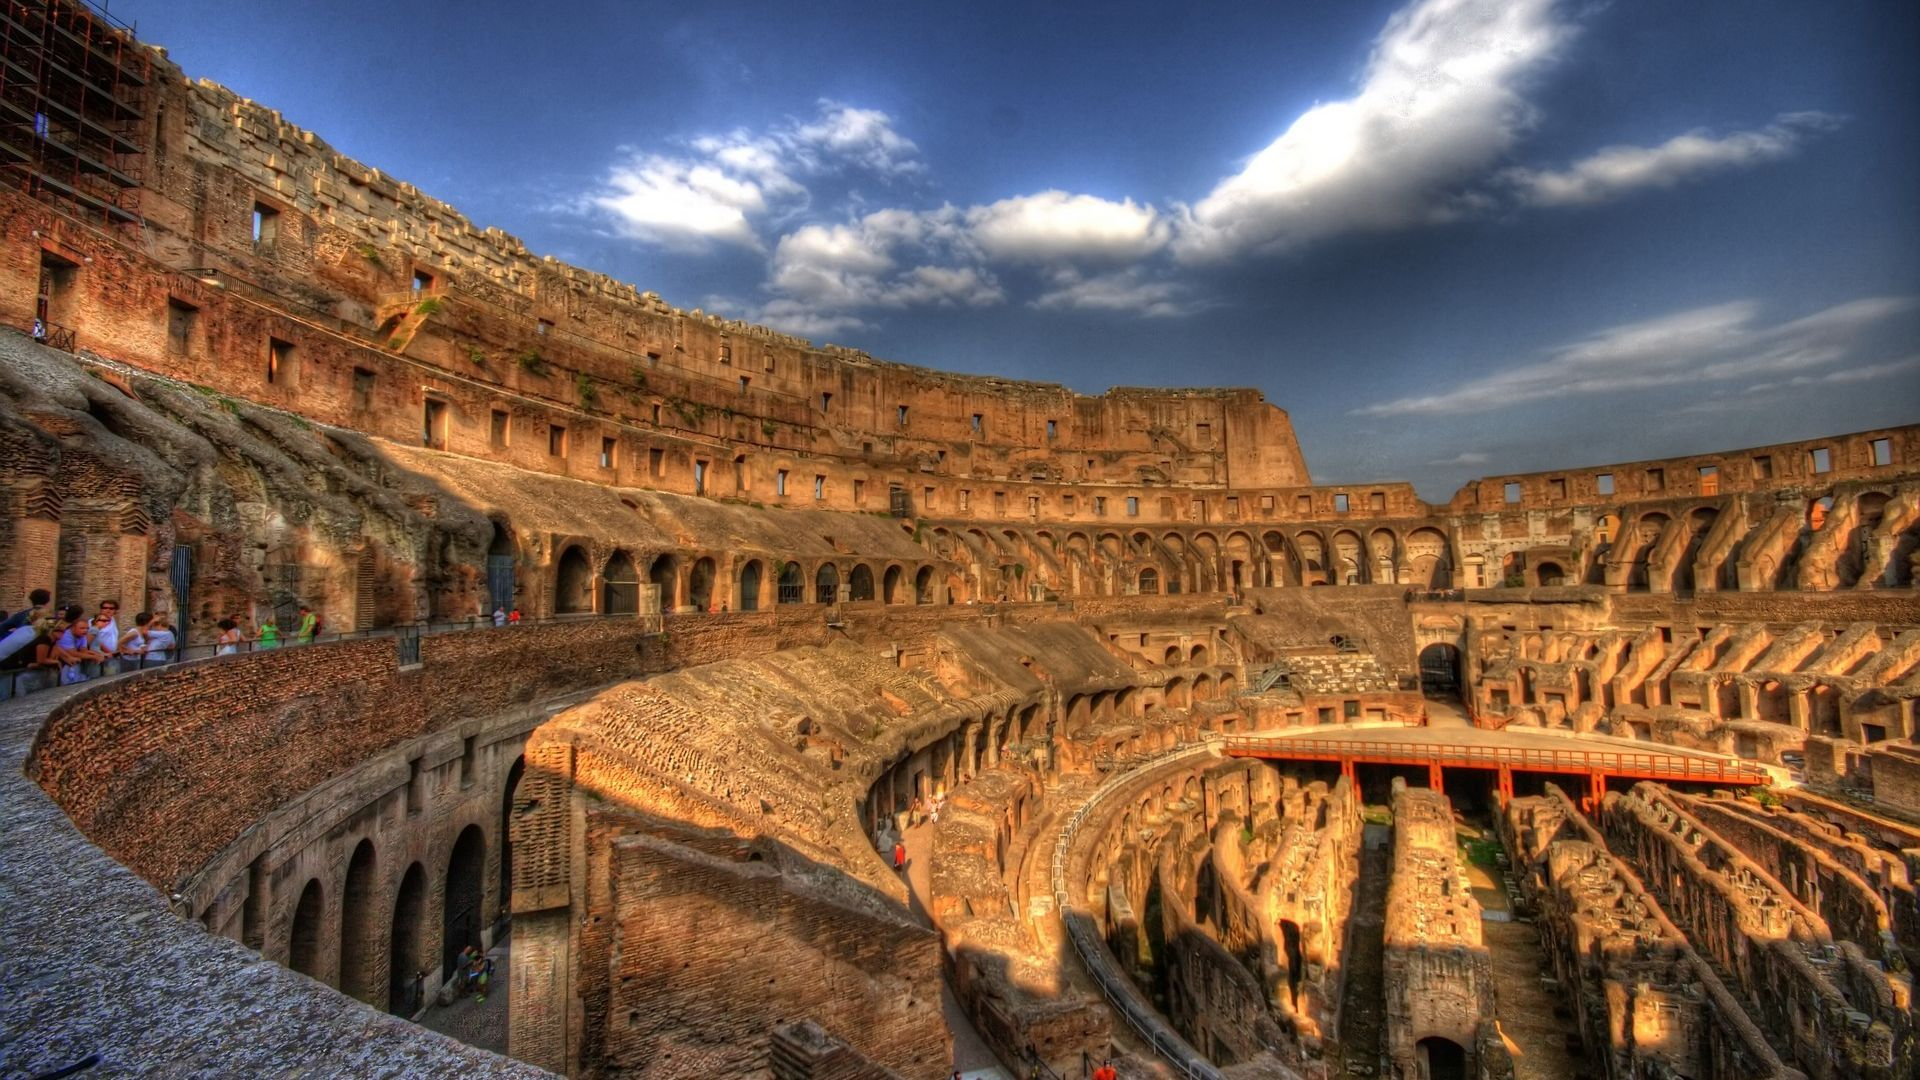 The Colosseum Rome Italy